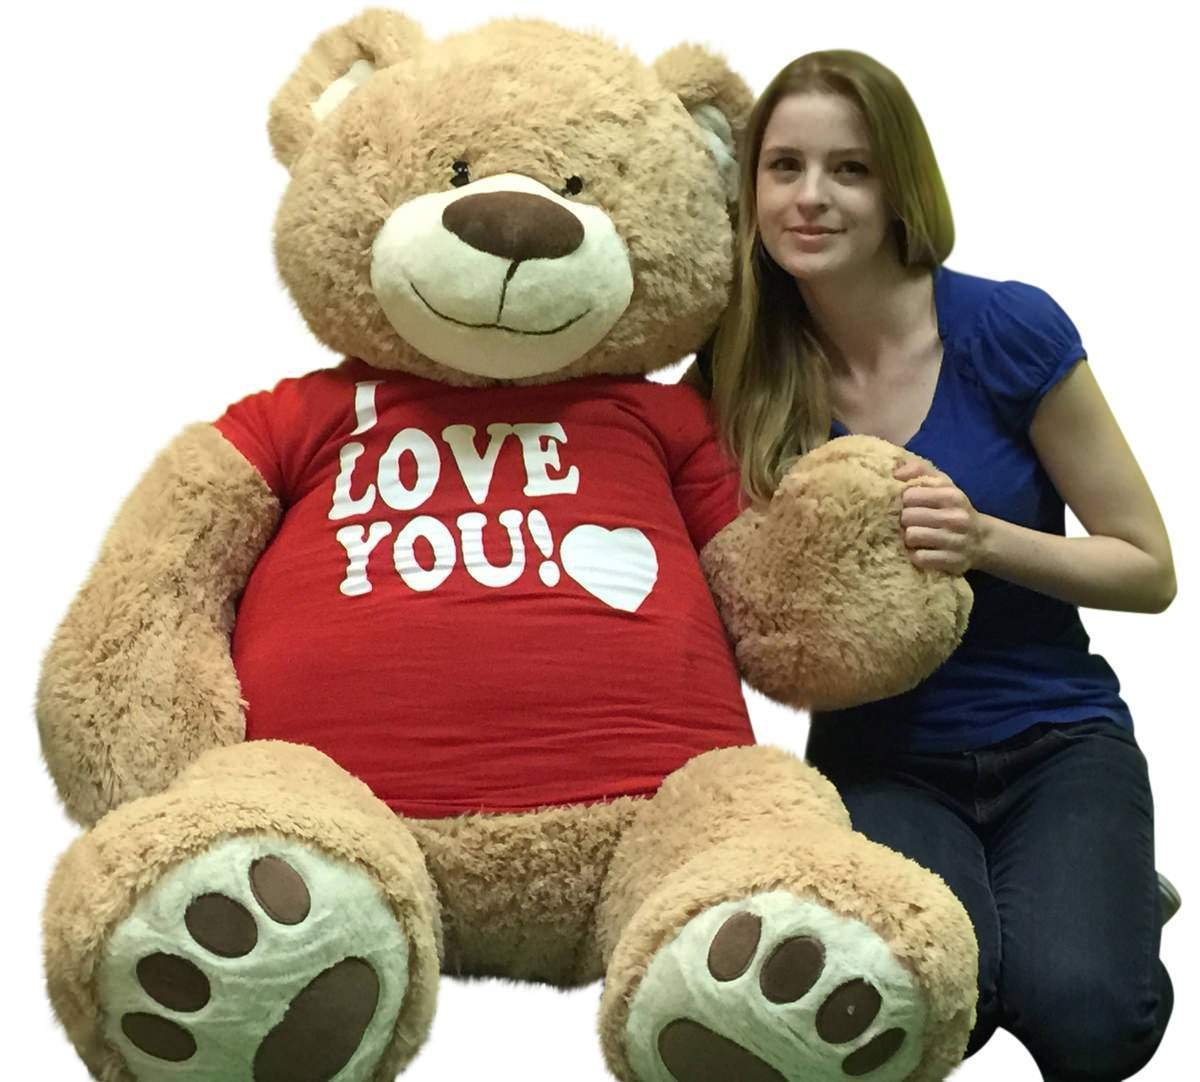 Amazon.com: I Love You Giant 5 Foot Teddy Bear Soft 60 Inch Wears I Love  You T Shirt Weighs 16 Pounds: Toys U0026 Games